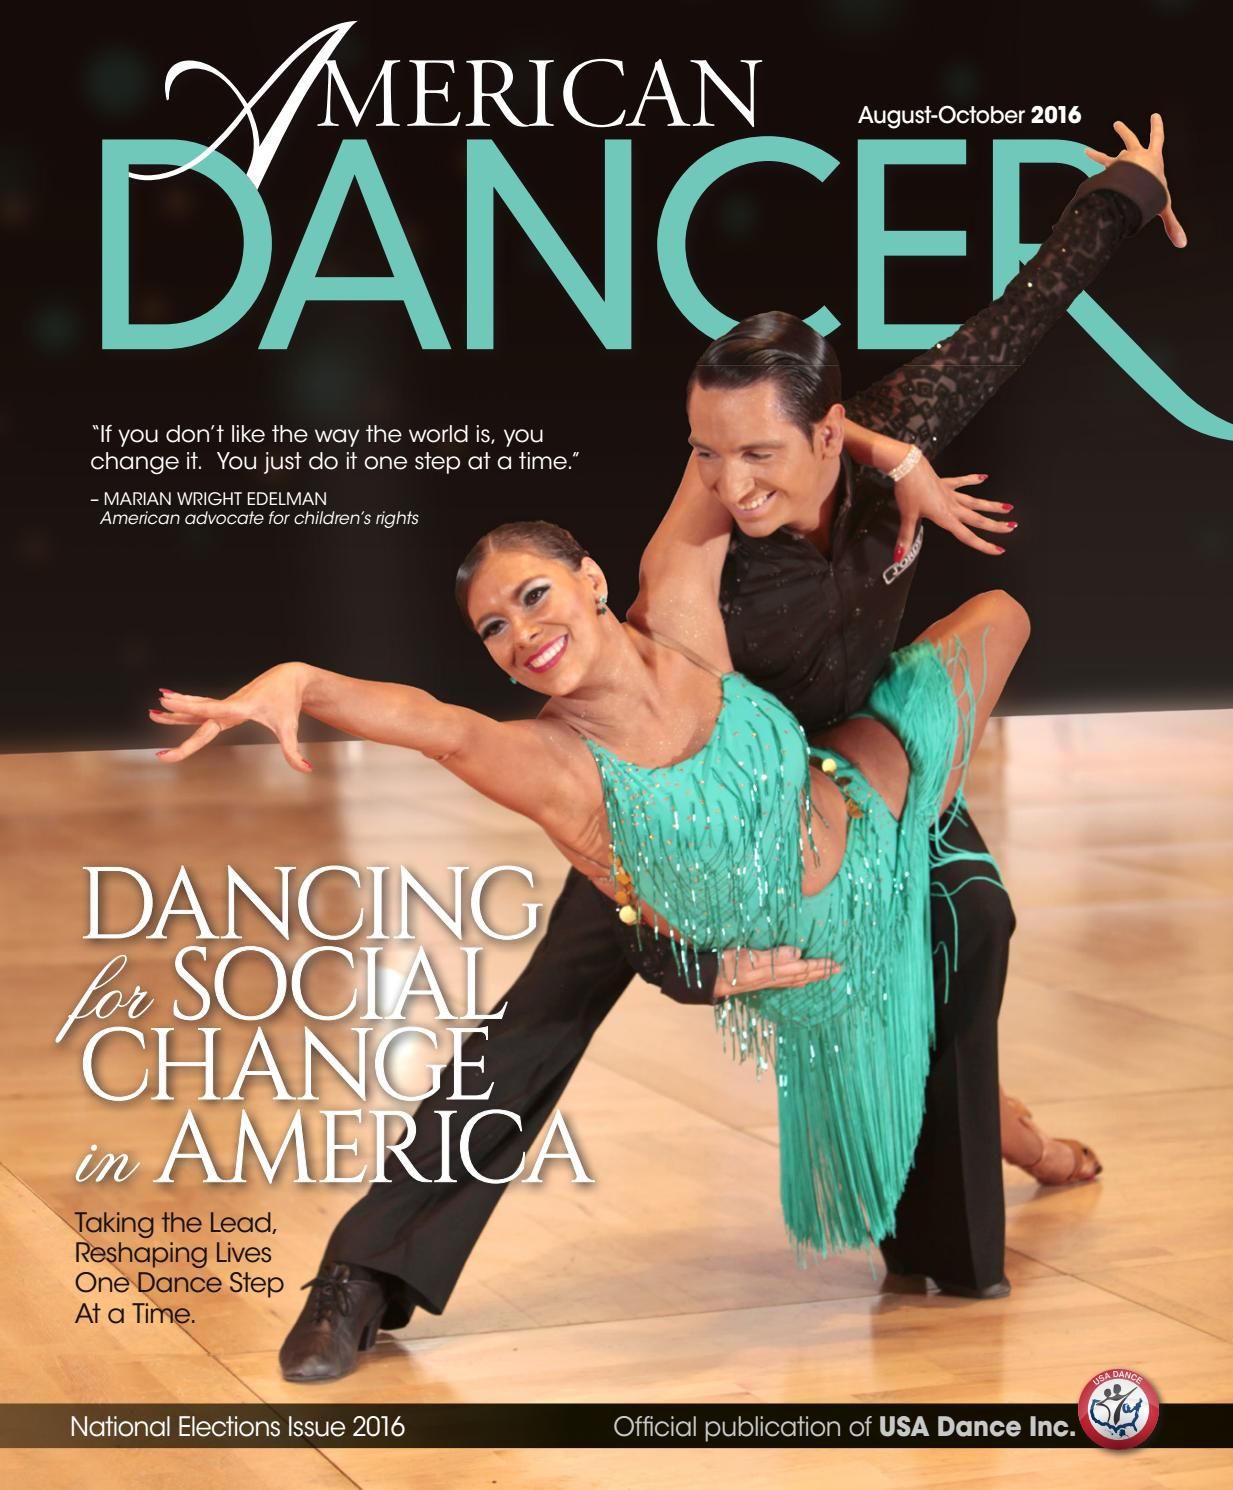 American Dancer Magazine August October 2016 Issue By Sound Source Locator Uses Prechamp Issuu